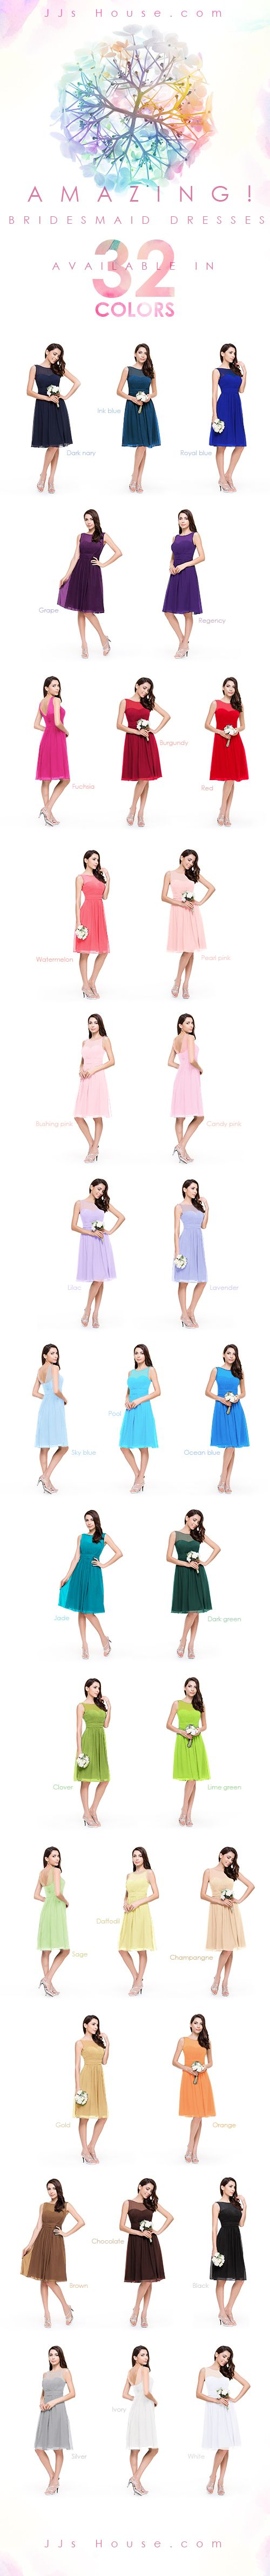 Amazing! 32 colors for you to choose. Find the perfect bridesmaid dresses, with over 1000 styles in 32 colors on JJsHouse. #JJsHouse